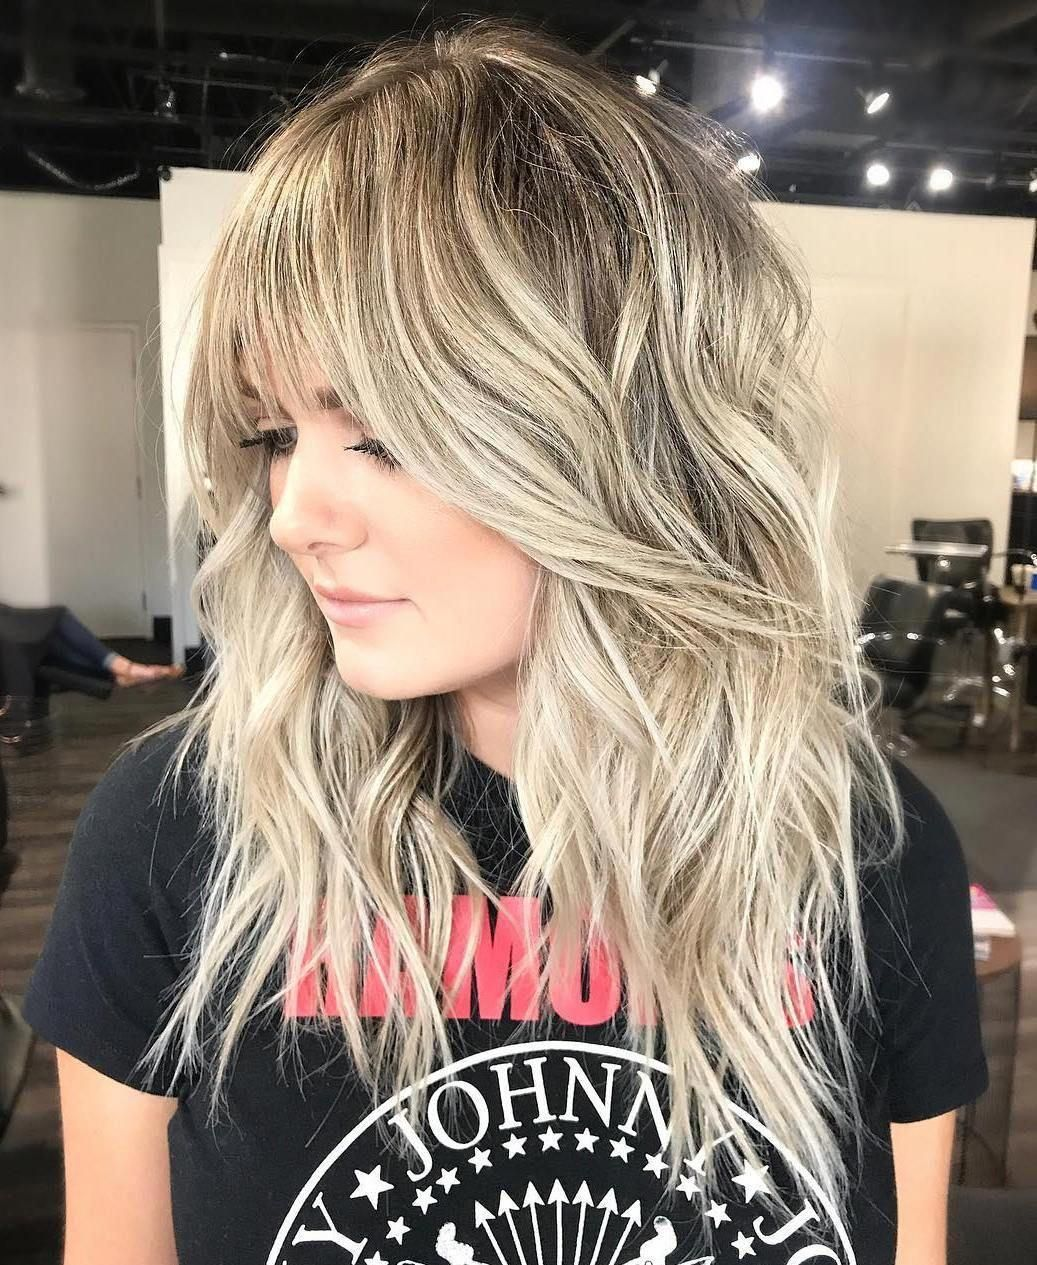 Beautiful Edgy Long Hairstyles Edgylonghairstyles Long Shag Haircut Modern Shag Haircut Blonde Hair With Bangs